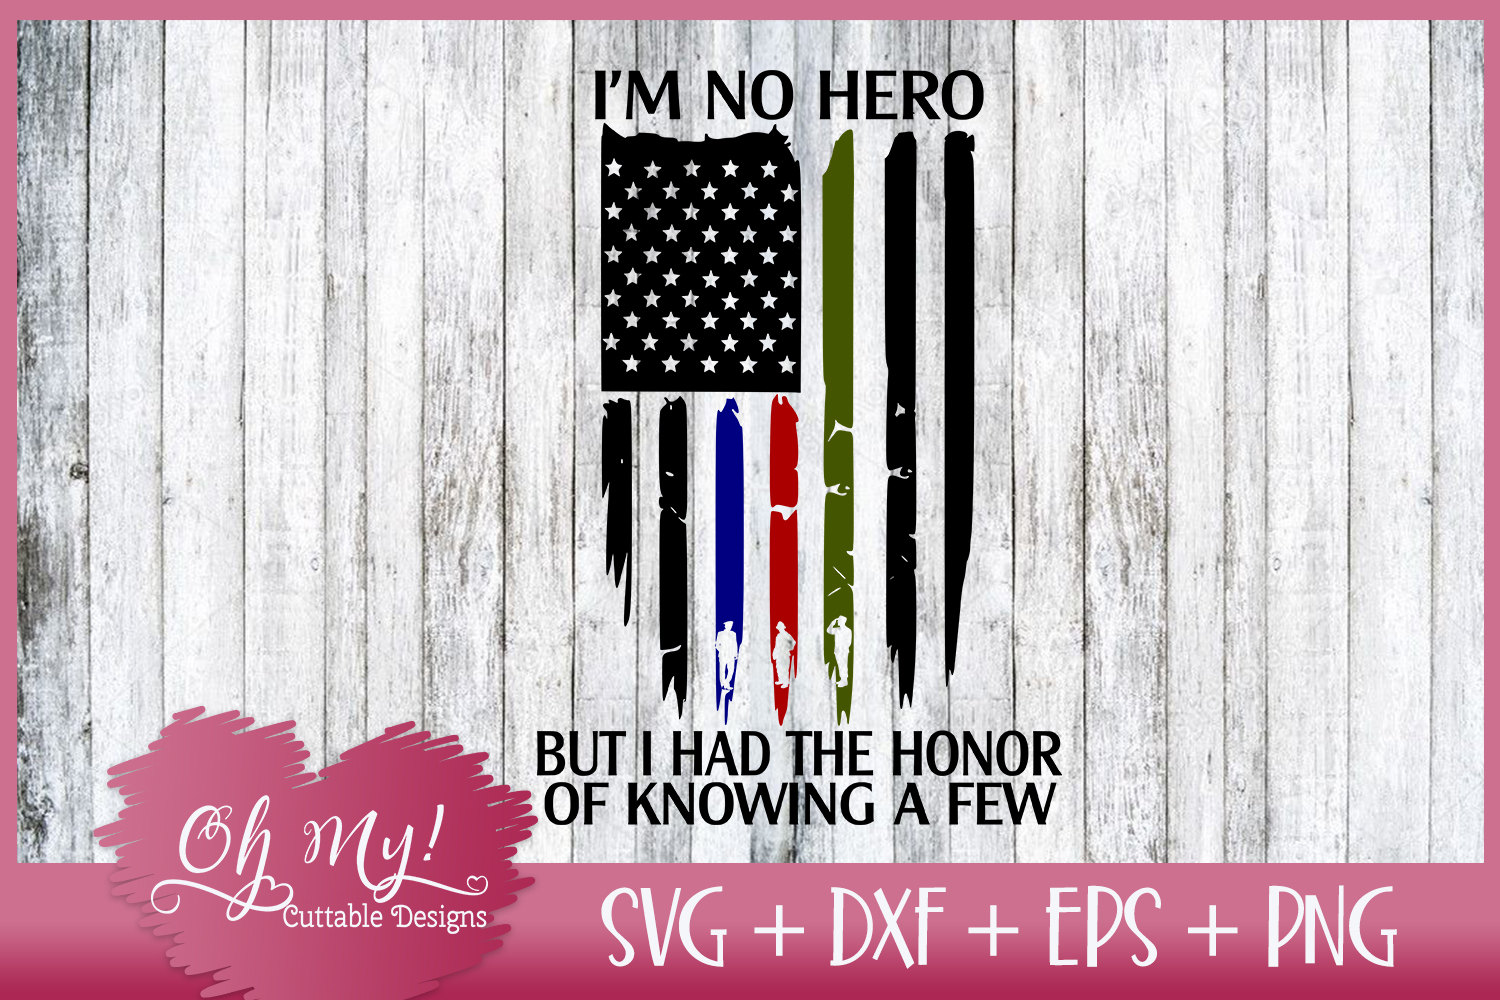 Distresses Flag - I'm No Hero - SVG DXF EPS PNG Cutting File example image 4